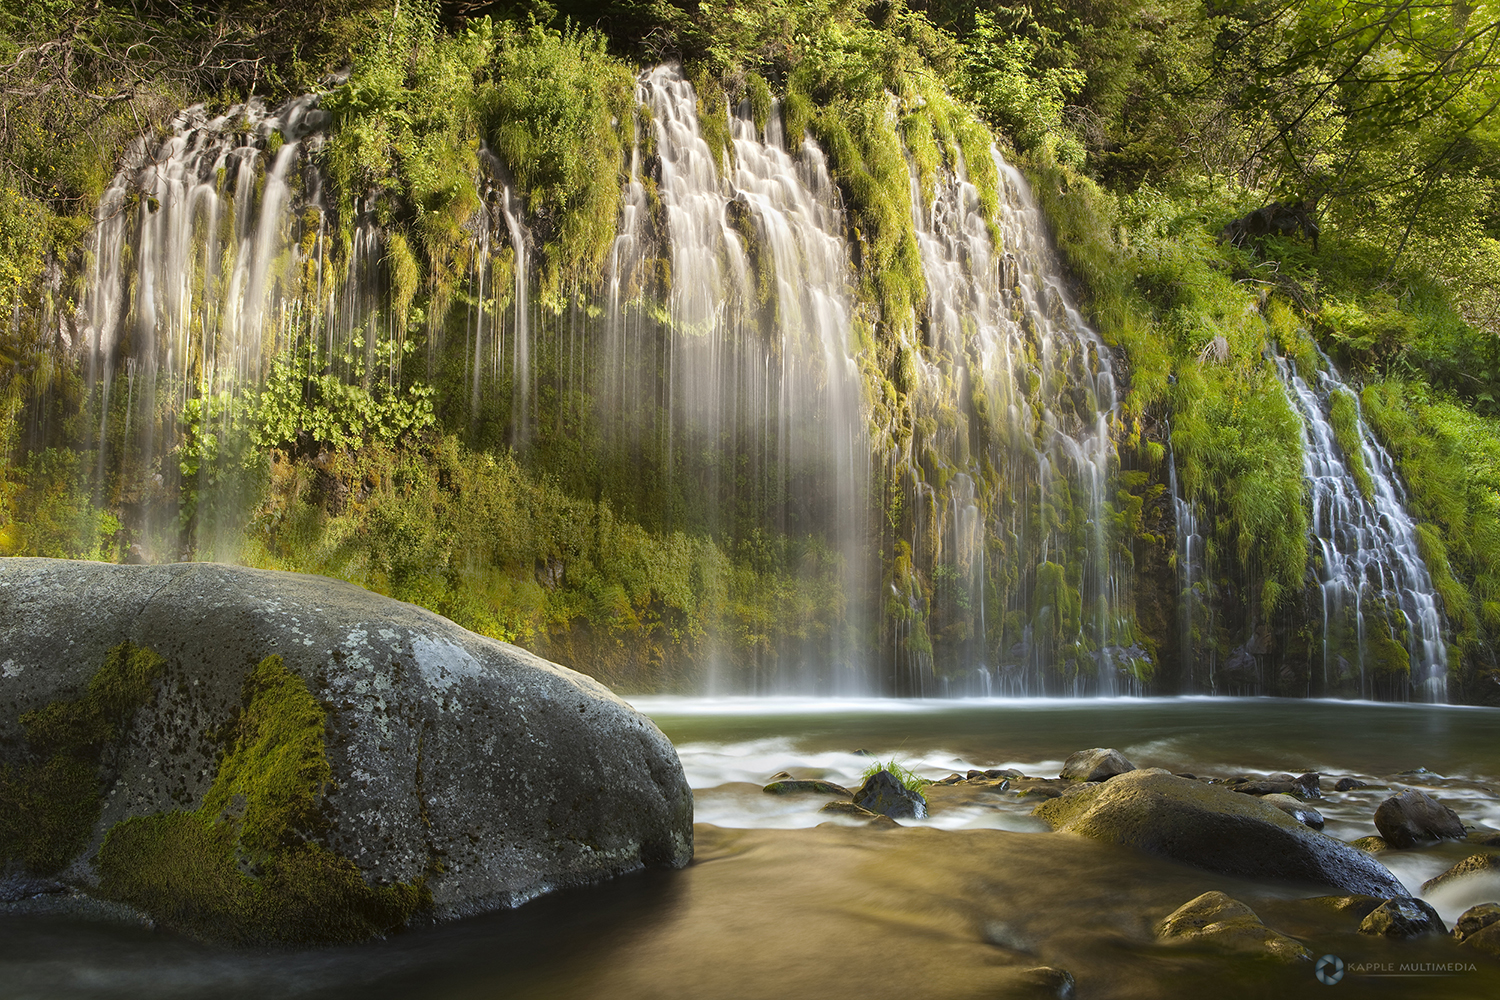 Evening warm light at Mossbrae Falls, Shasta National Forest, California, USA